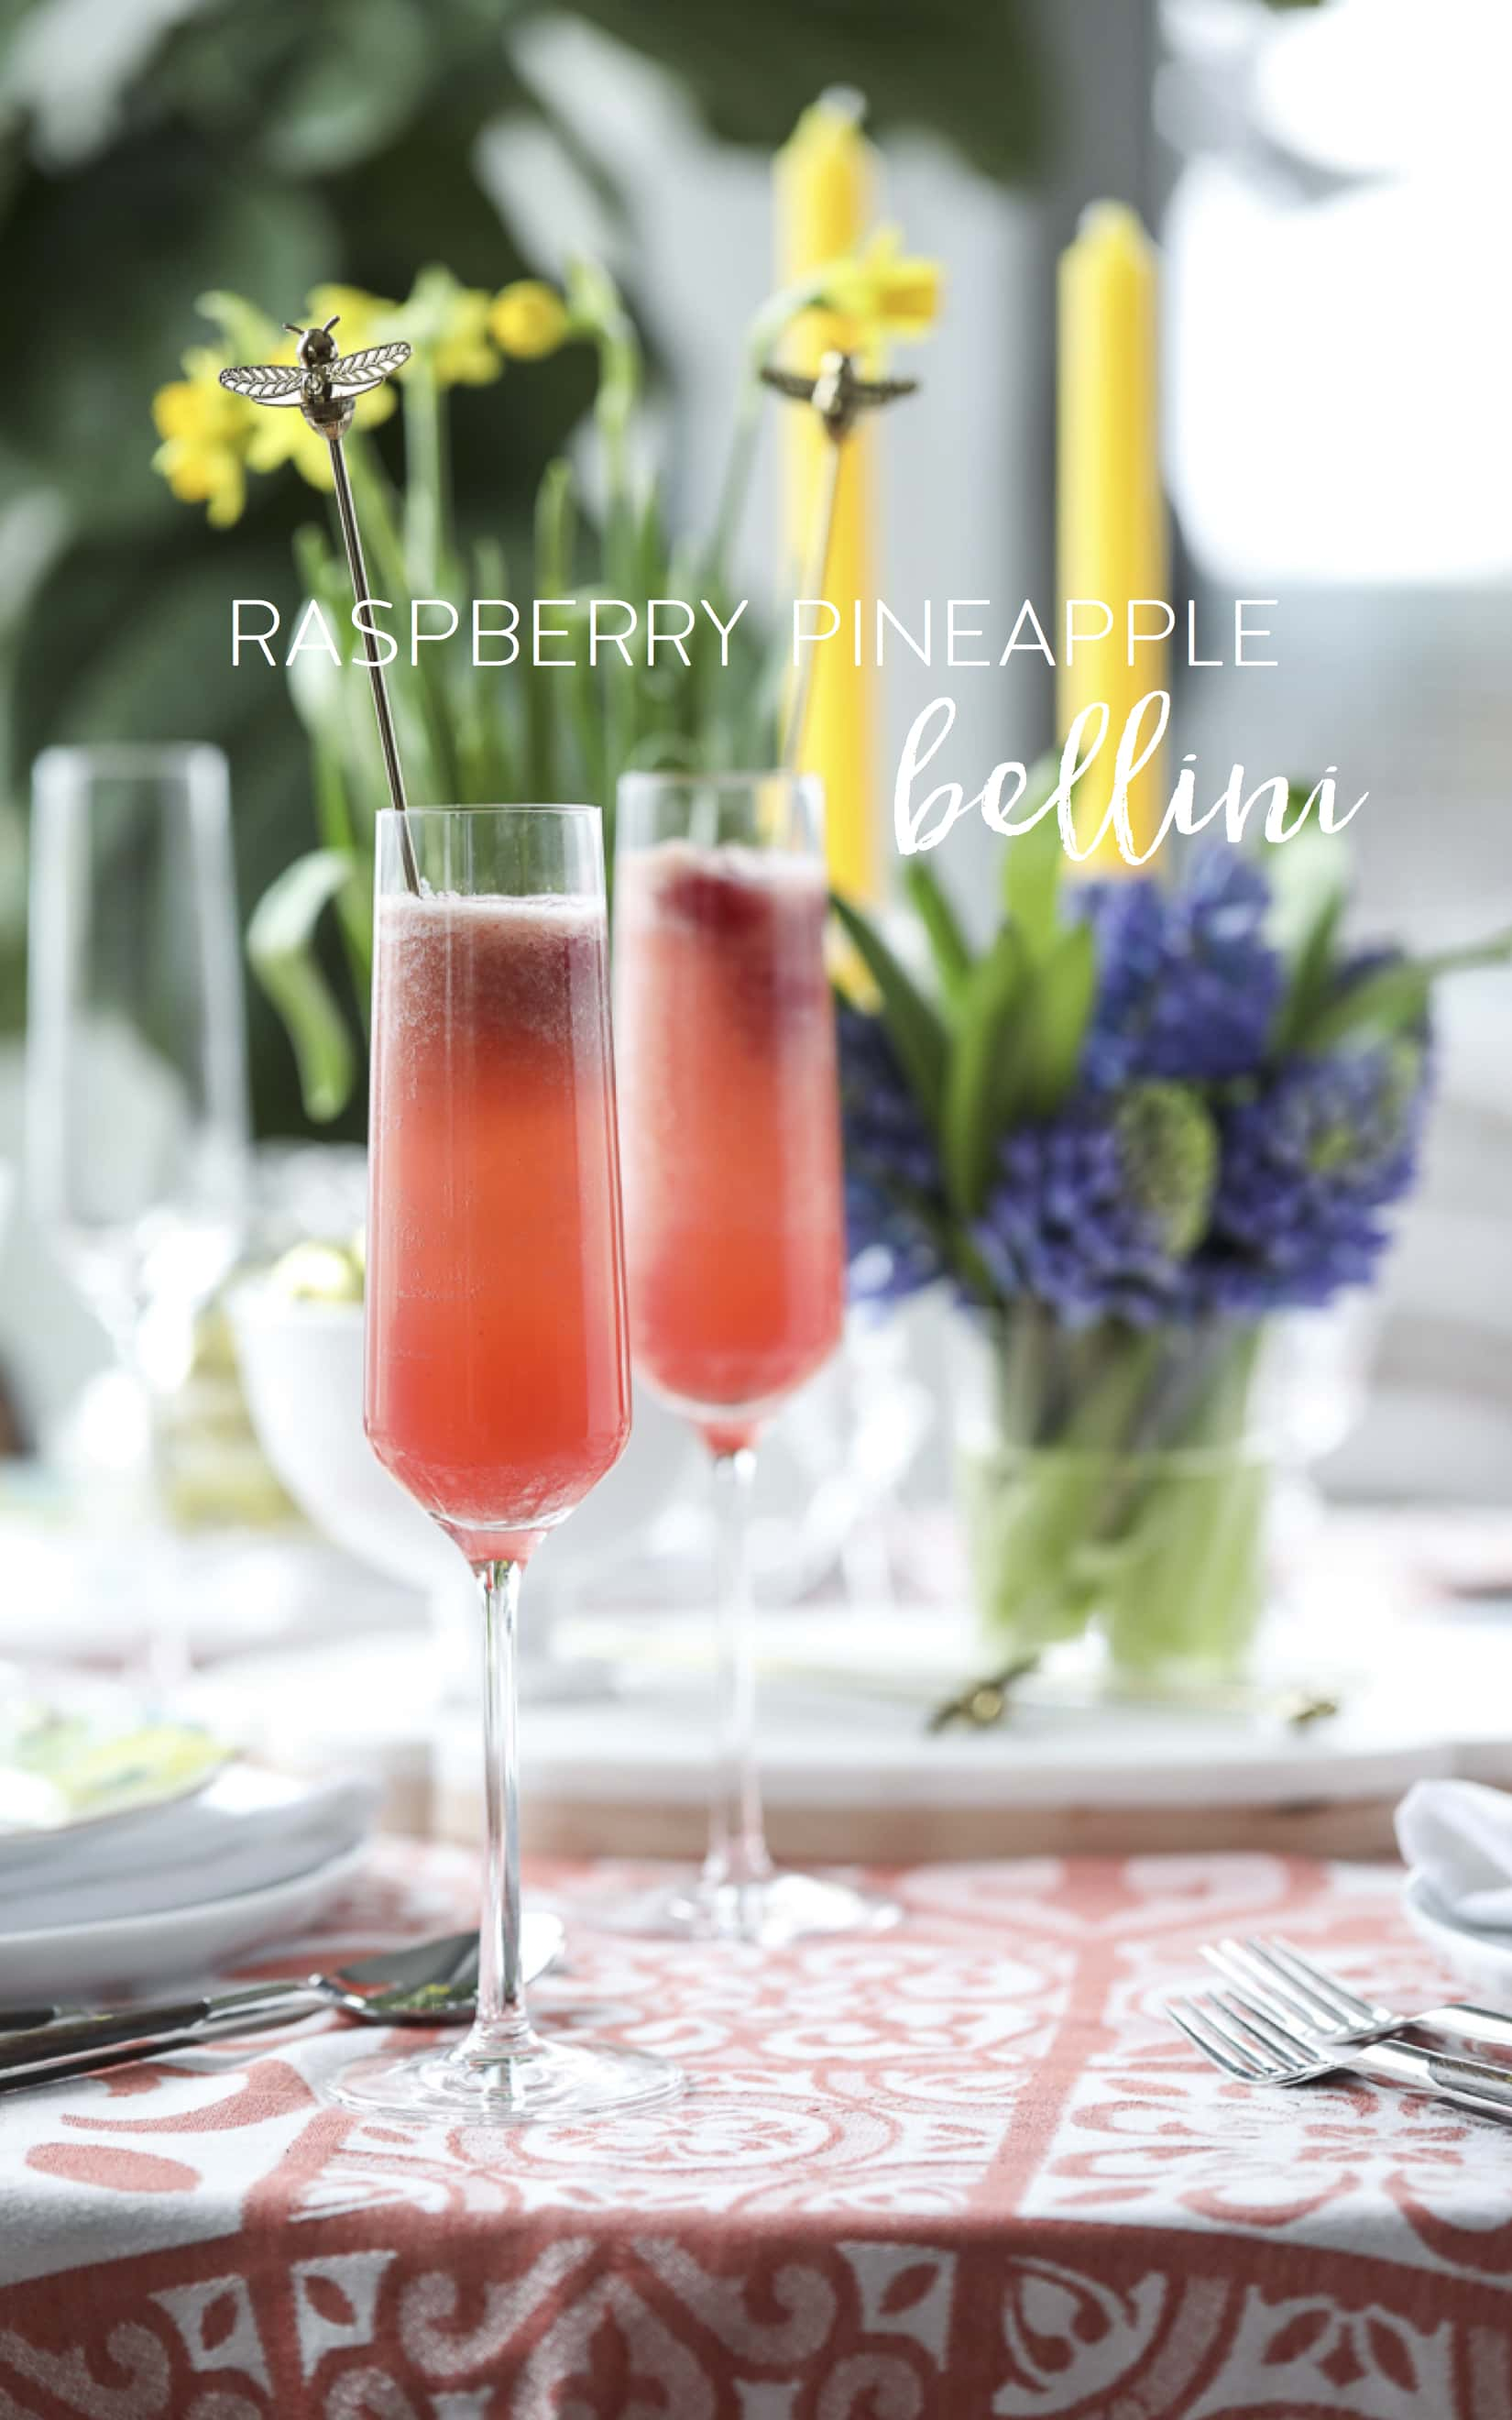 This Raspberry Pineapple #Bellini Recipe is a delicious #spring #cocktail #recipe!